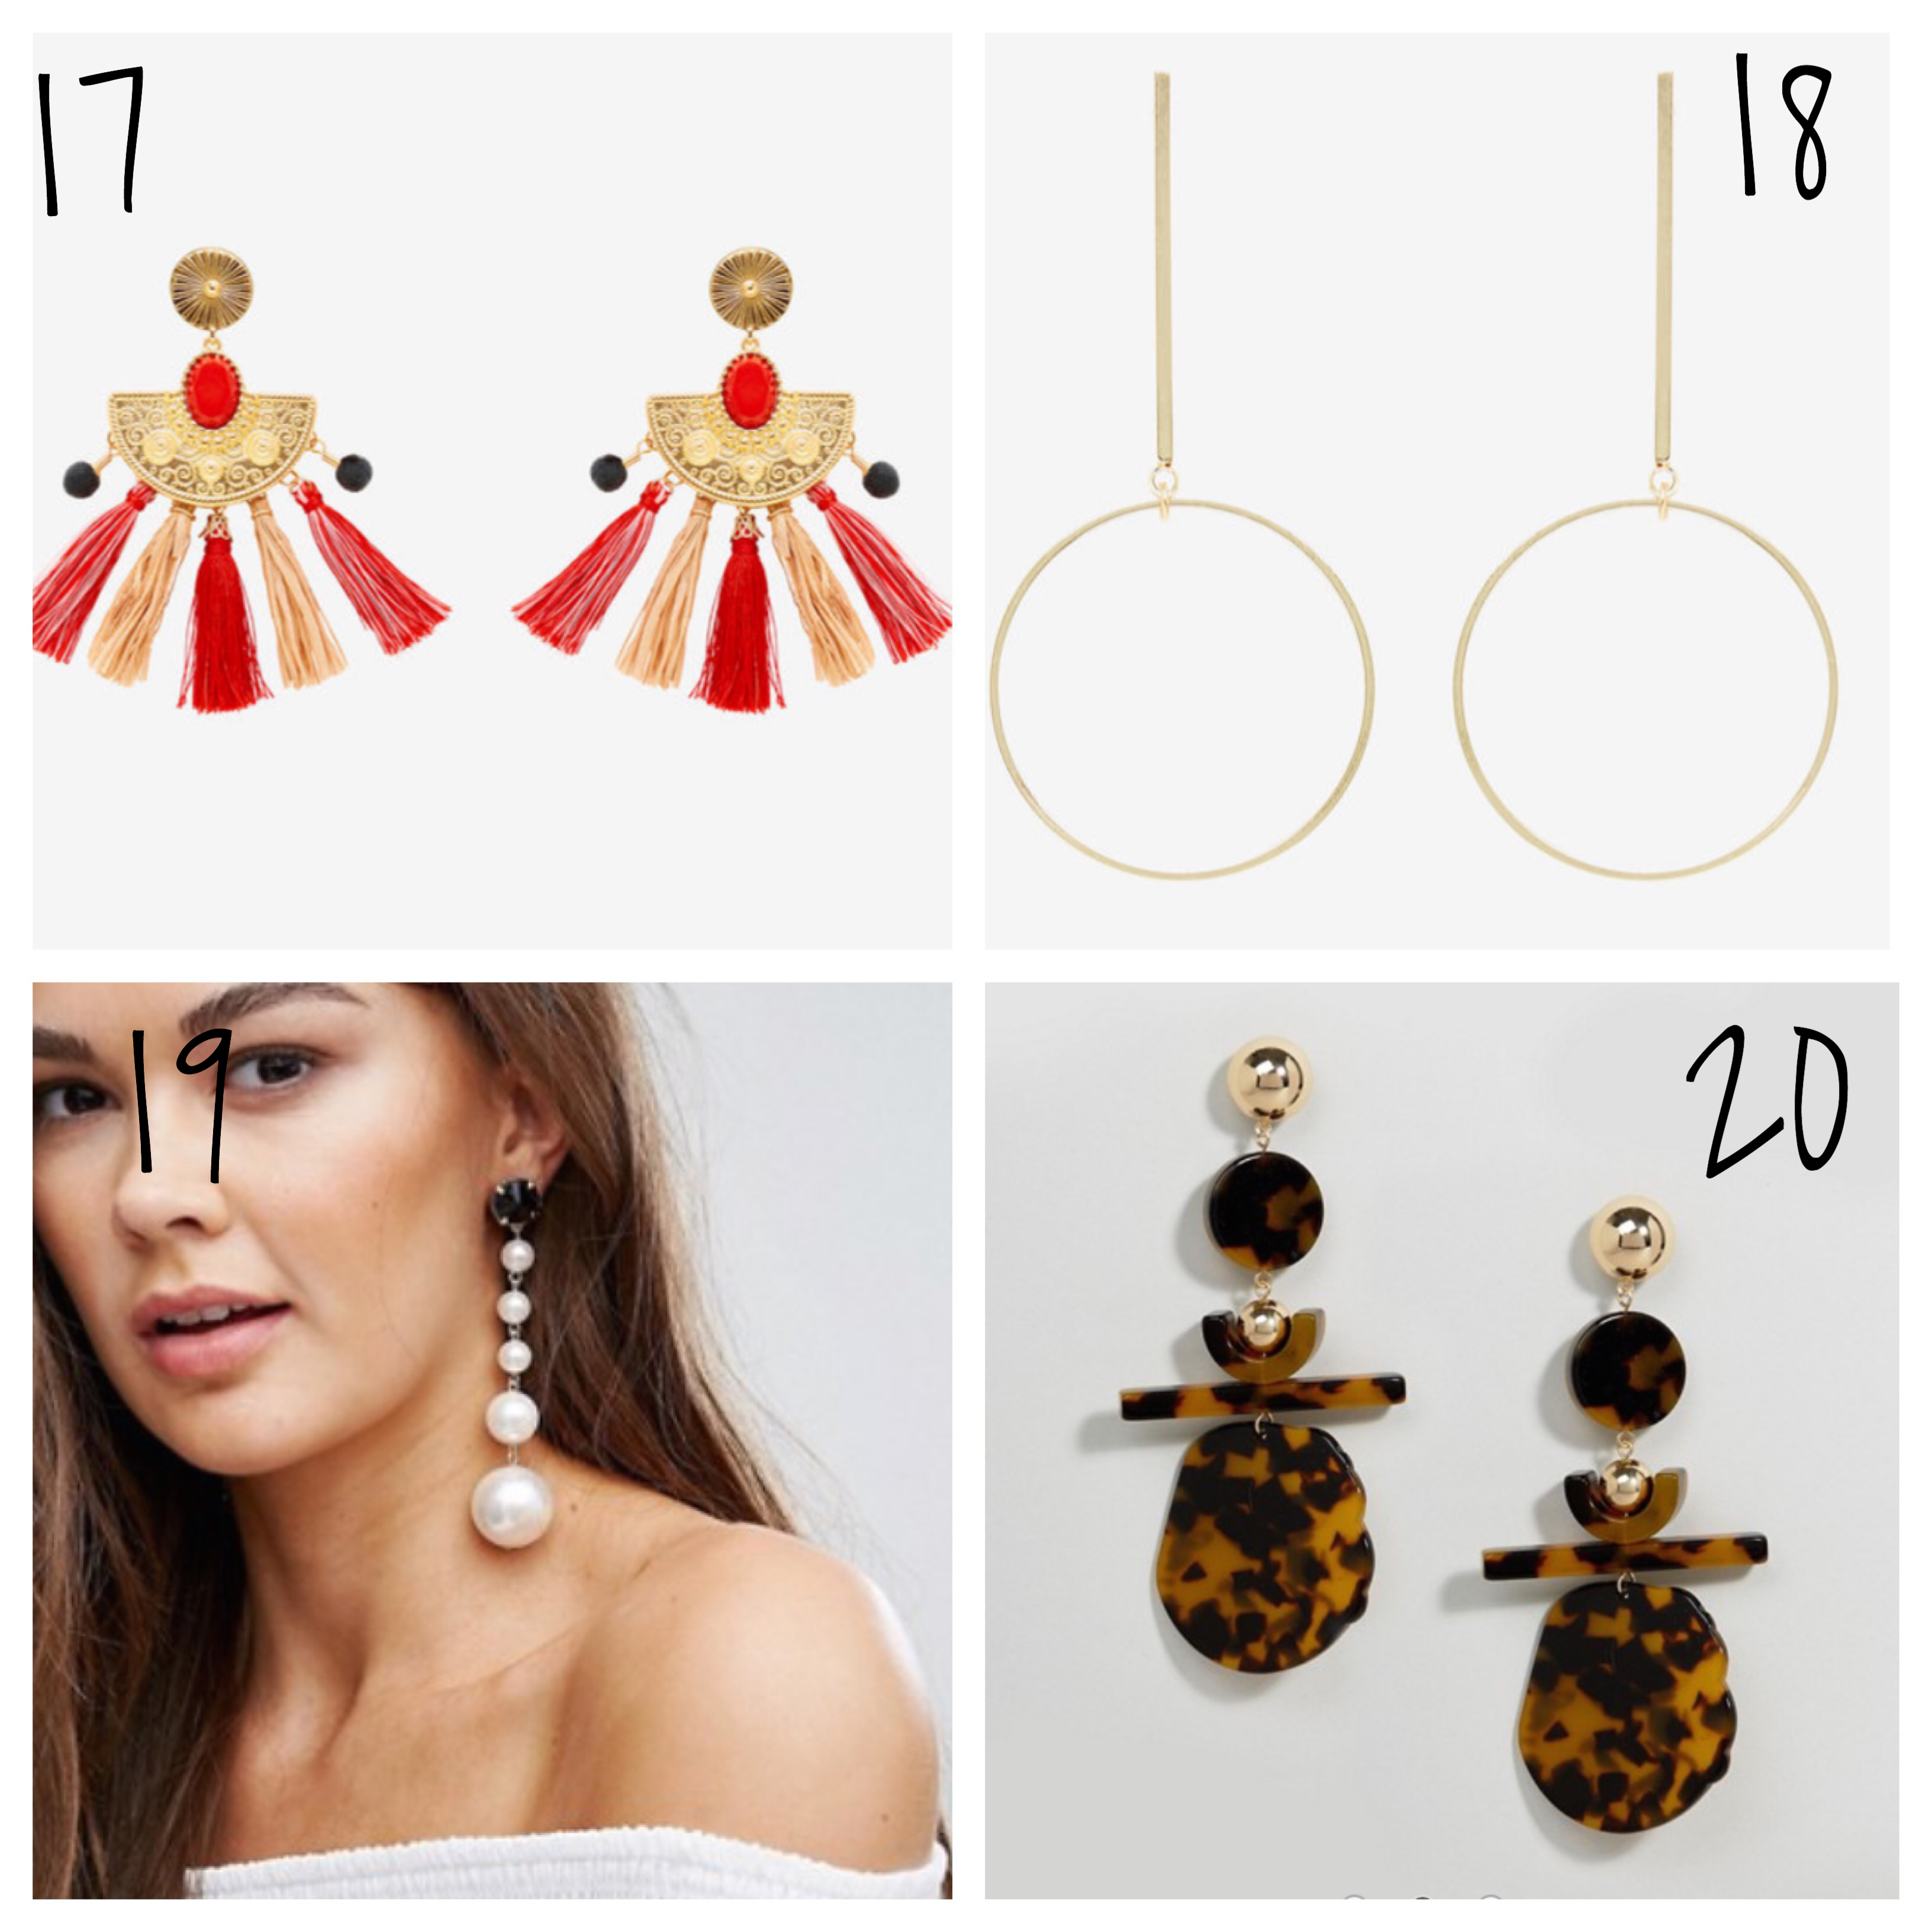 Pom pom earrings and affordable pearl earrings